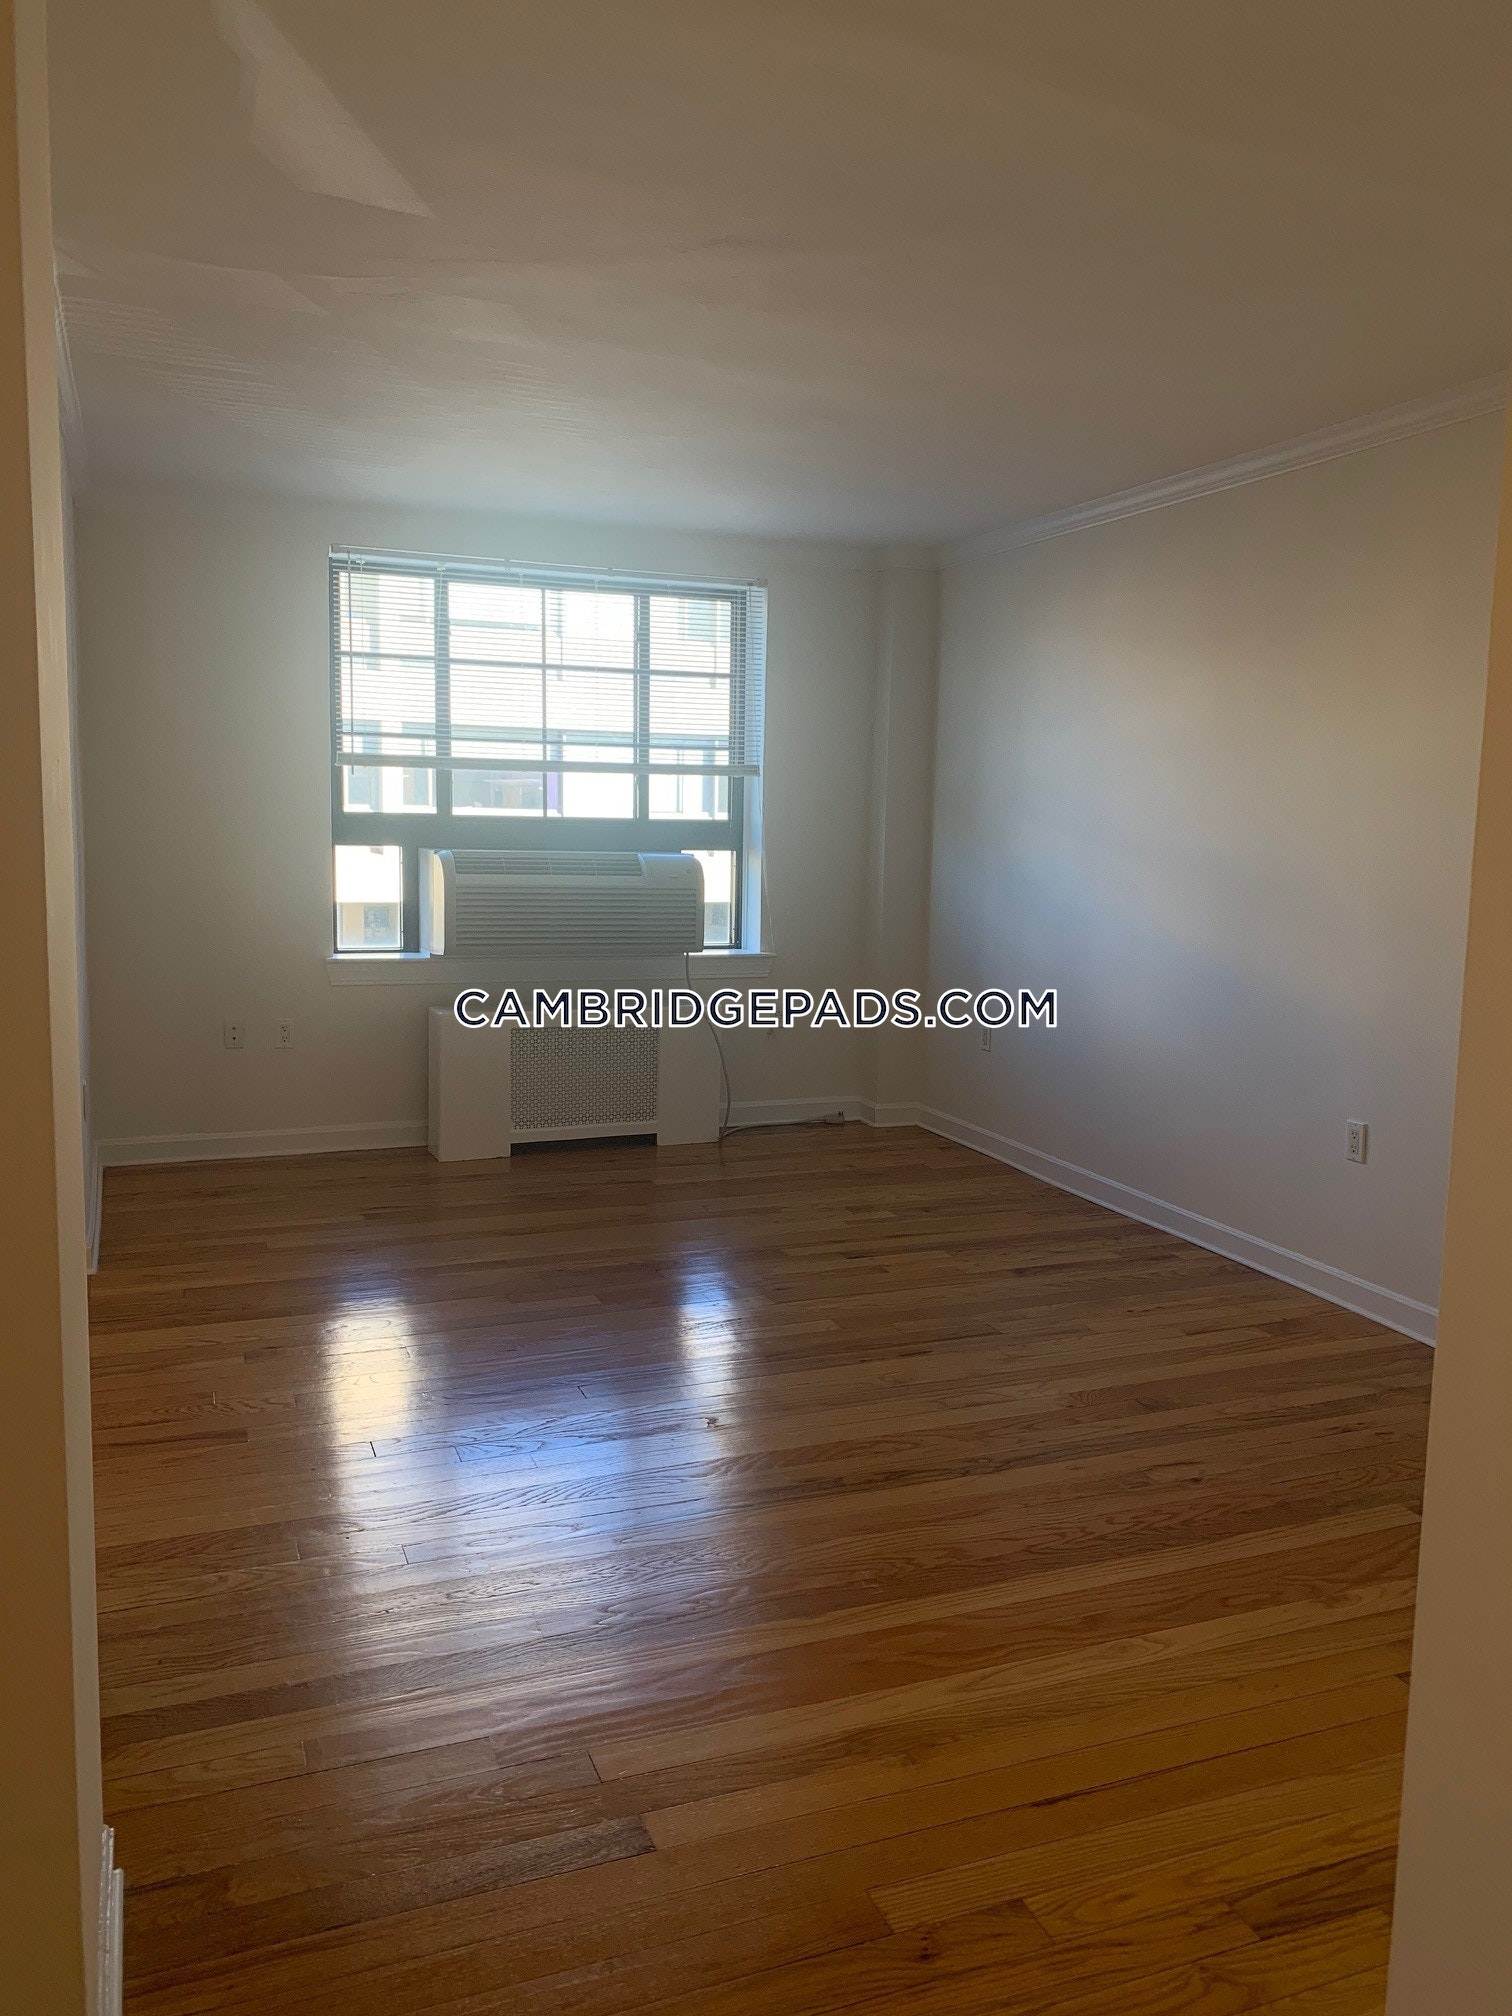 CAMBRIDGE - HARVARD SQUARE - $2,815